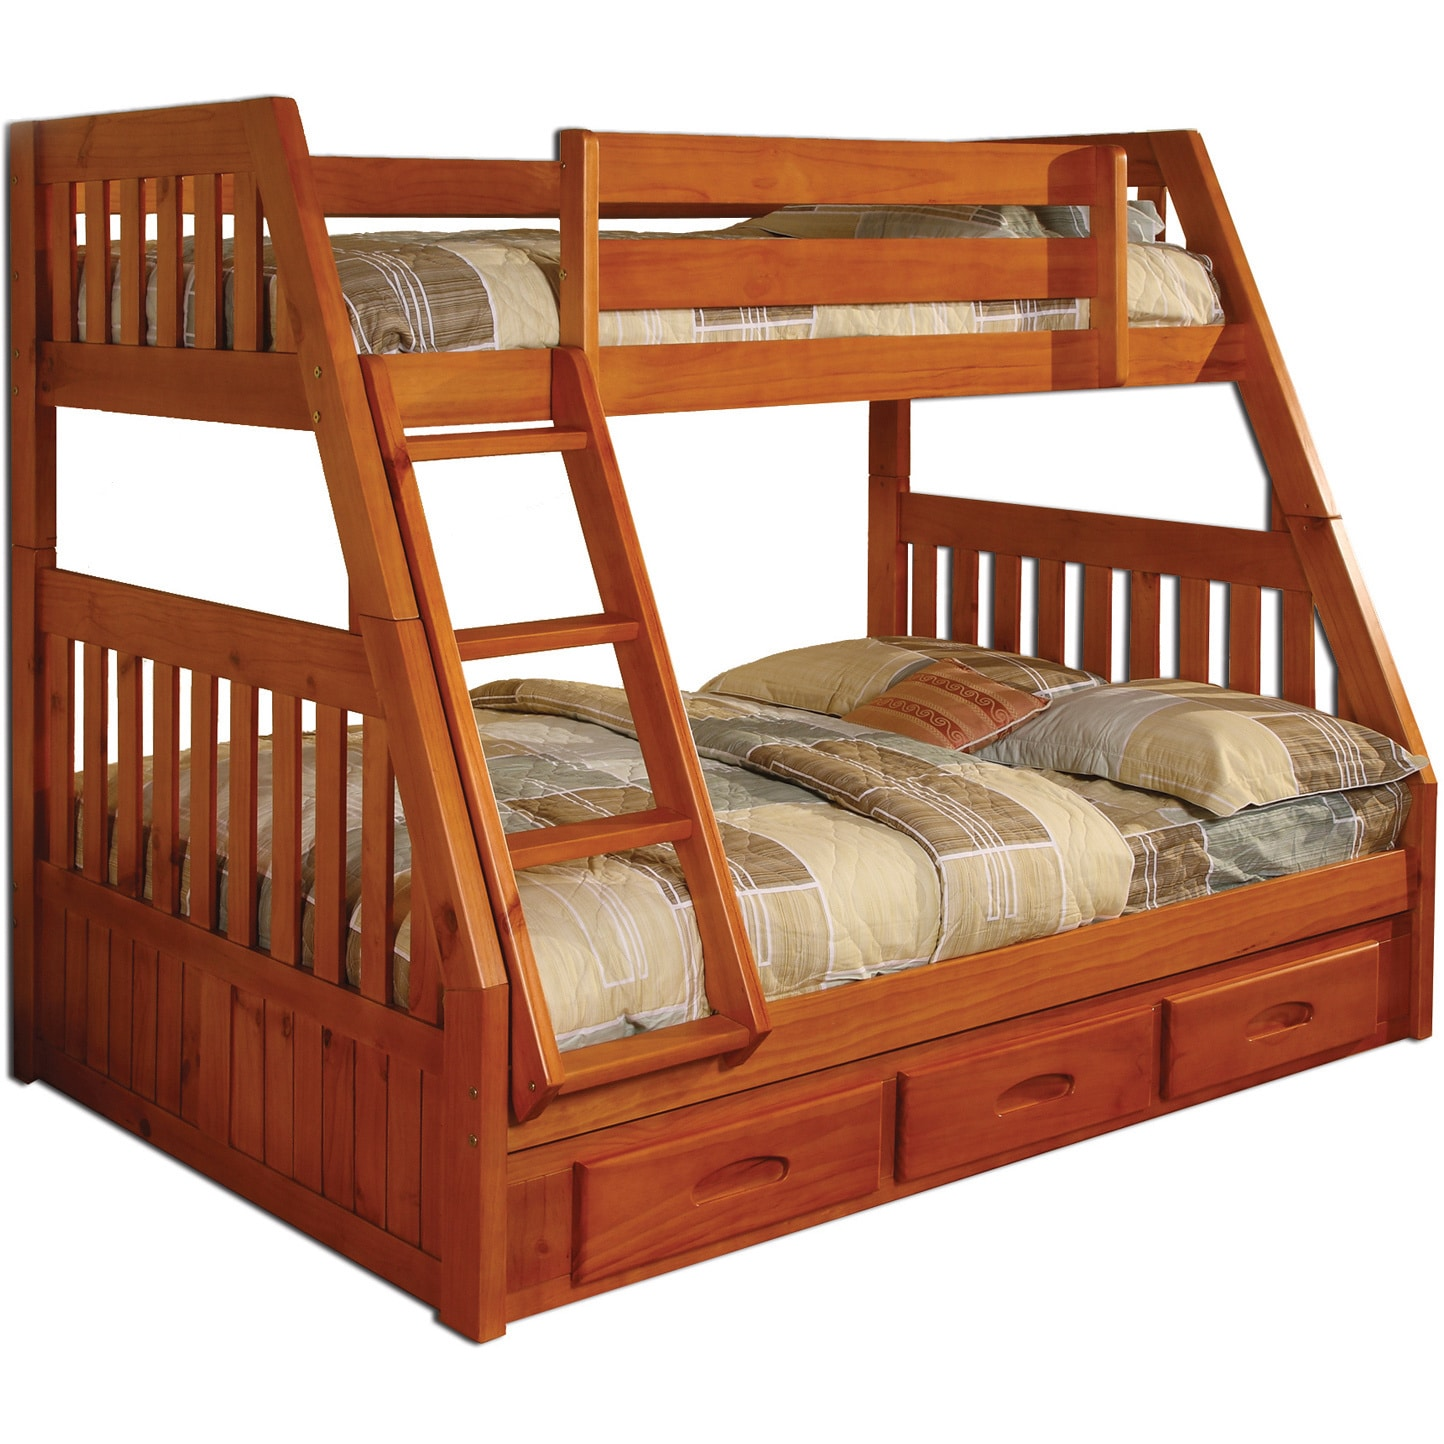 Picture of: Solid Pine Twin Over Full Bunk Bed With Drawers Overstock 9249233